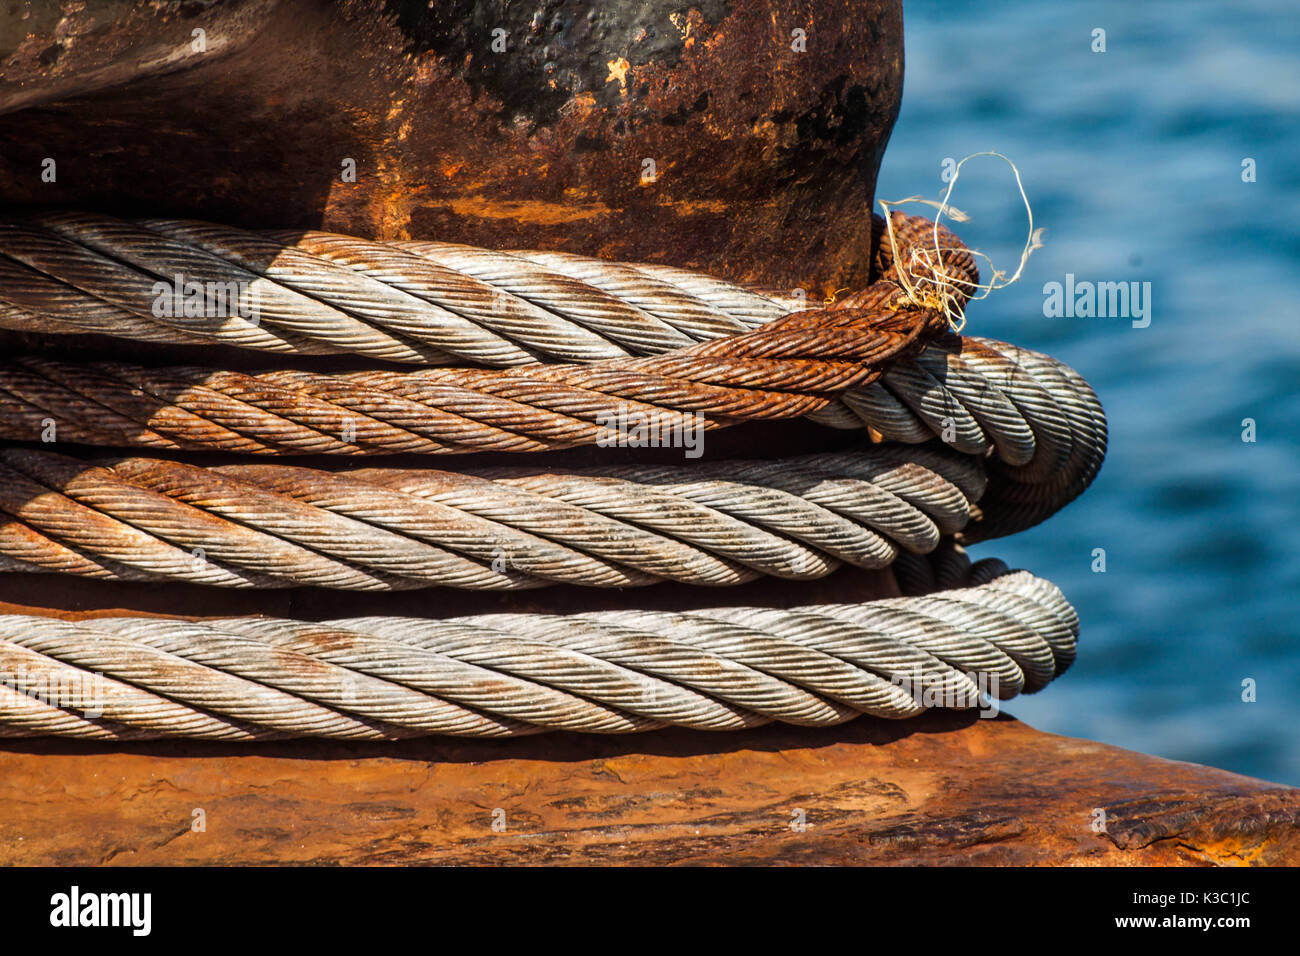 mooring bollard and cable at the harbour dock close up - Stock Image